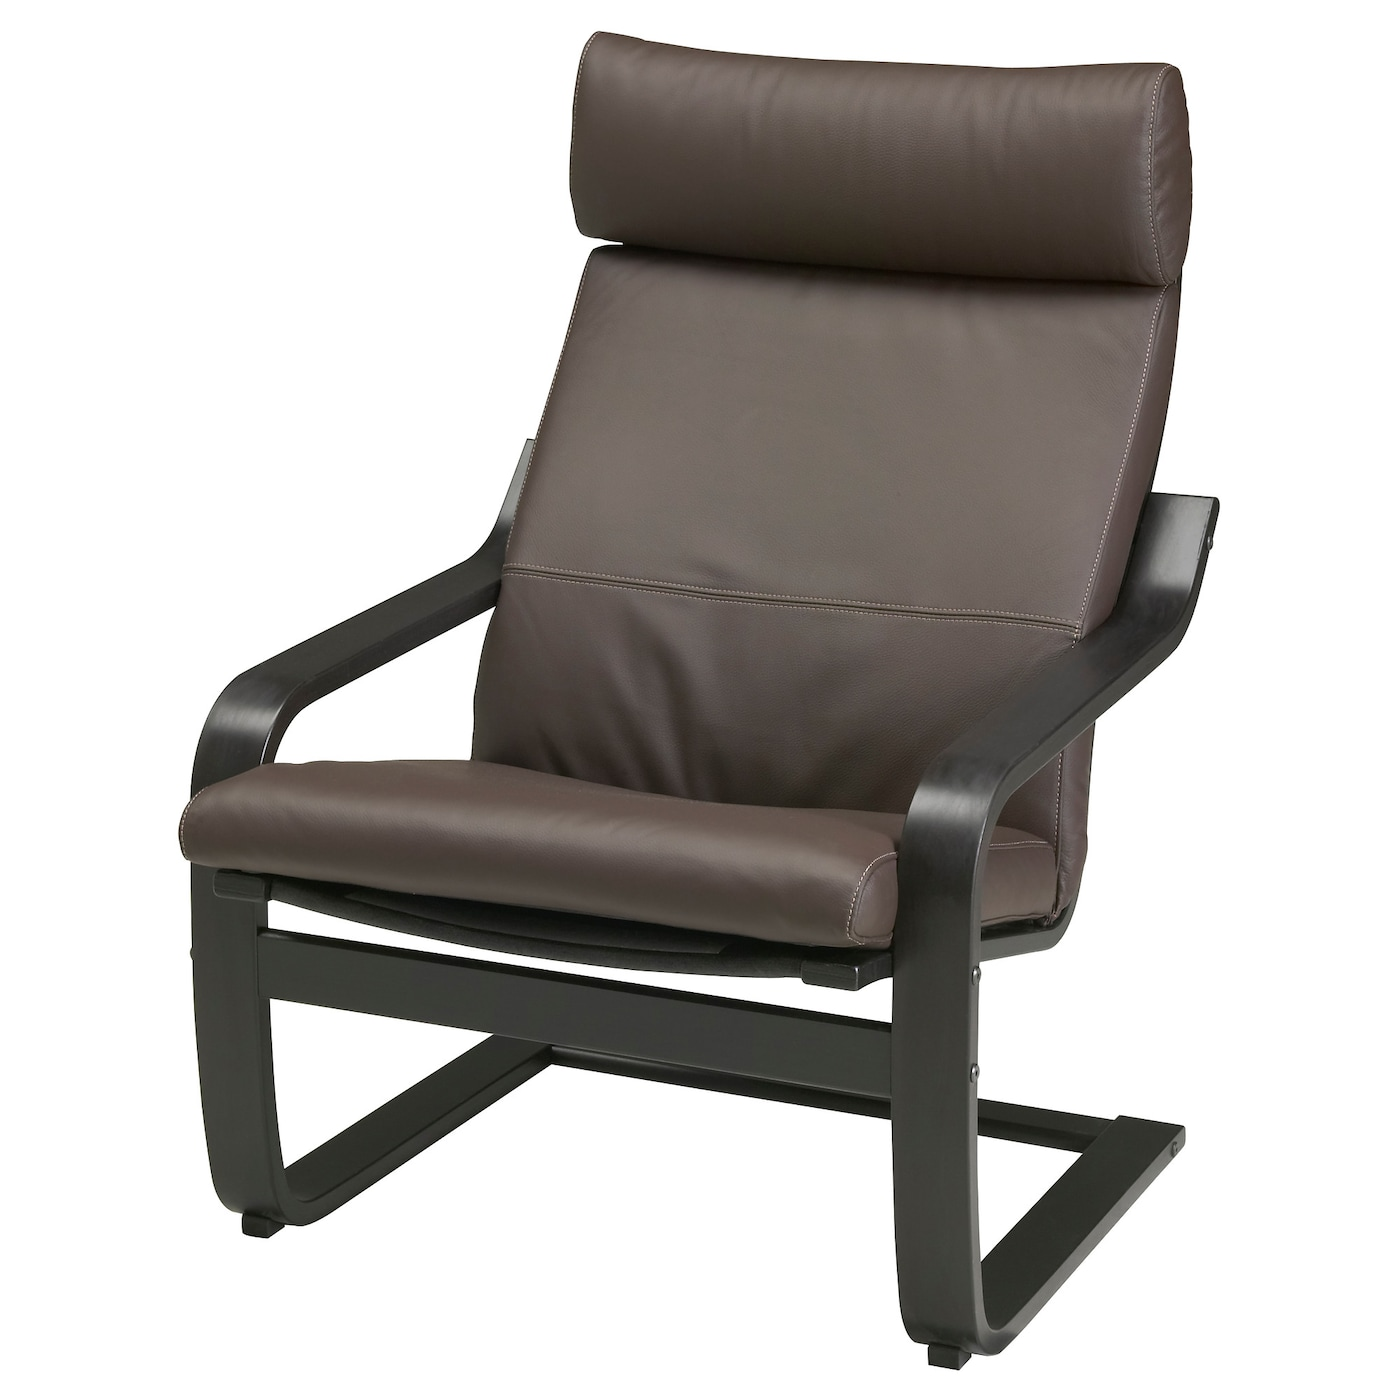 benches put chairs to chair stools gb art brown recliner light loungers grey en up sj lland fold ikea foldable away outdoor easy reclining and products garden